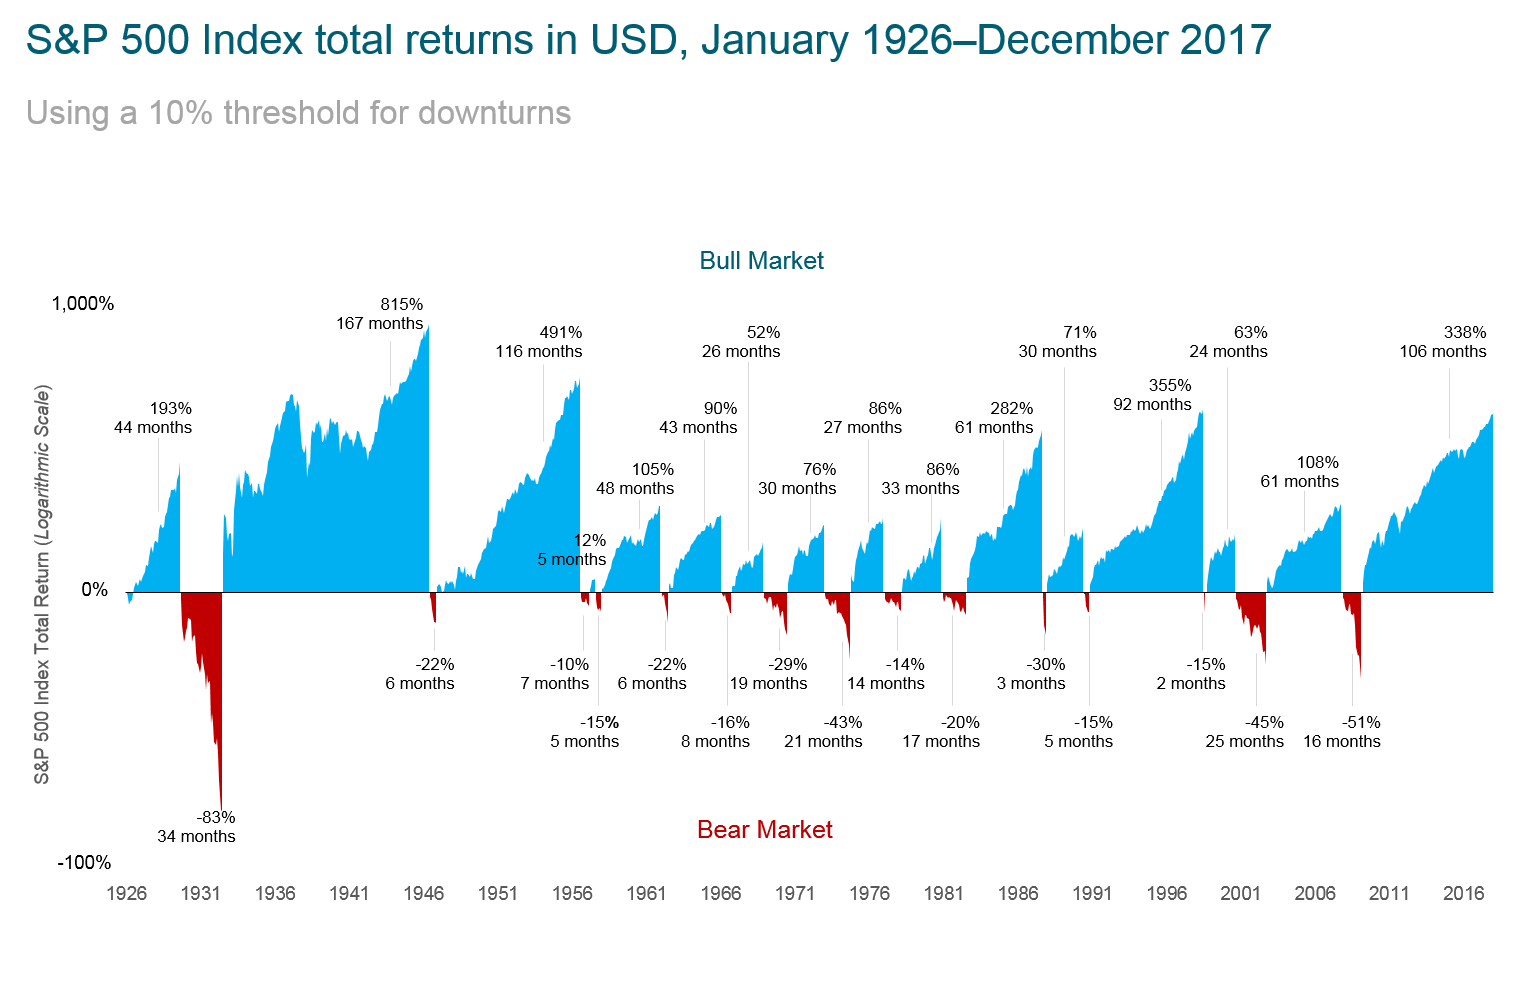 Exhibit 1.  A History of Market Ups and Downs.  Chart end date is 12/31/2017, the last trough to peak return of 338% represents the return through December 2017.  Bear markets are defined as downturns of 10% of greater from new index highs. Bull markets are subsequent rises following the bear market trough through the next new market high. The chart shows bear markets and bull markets, the number of months they lasted and the associated cumulative performance for each market period. Results for different time periods could differ from the results shown.